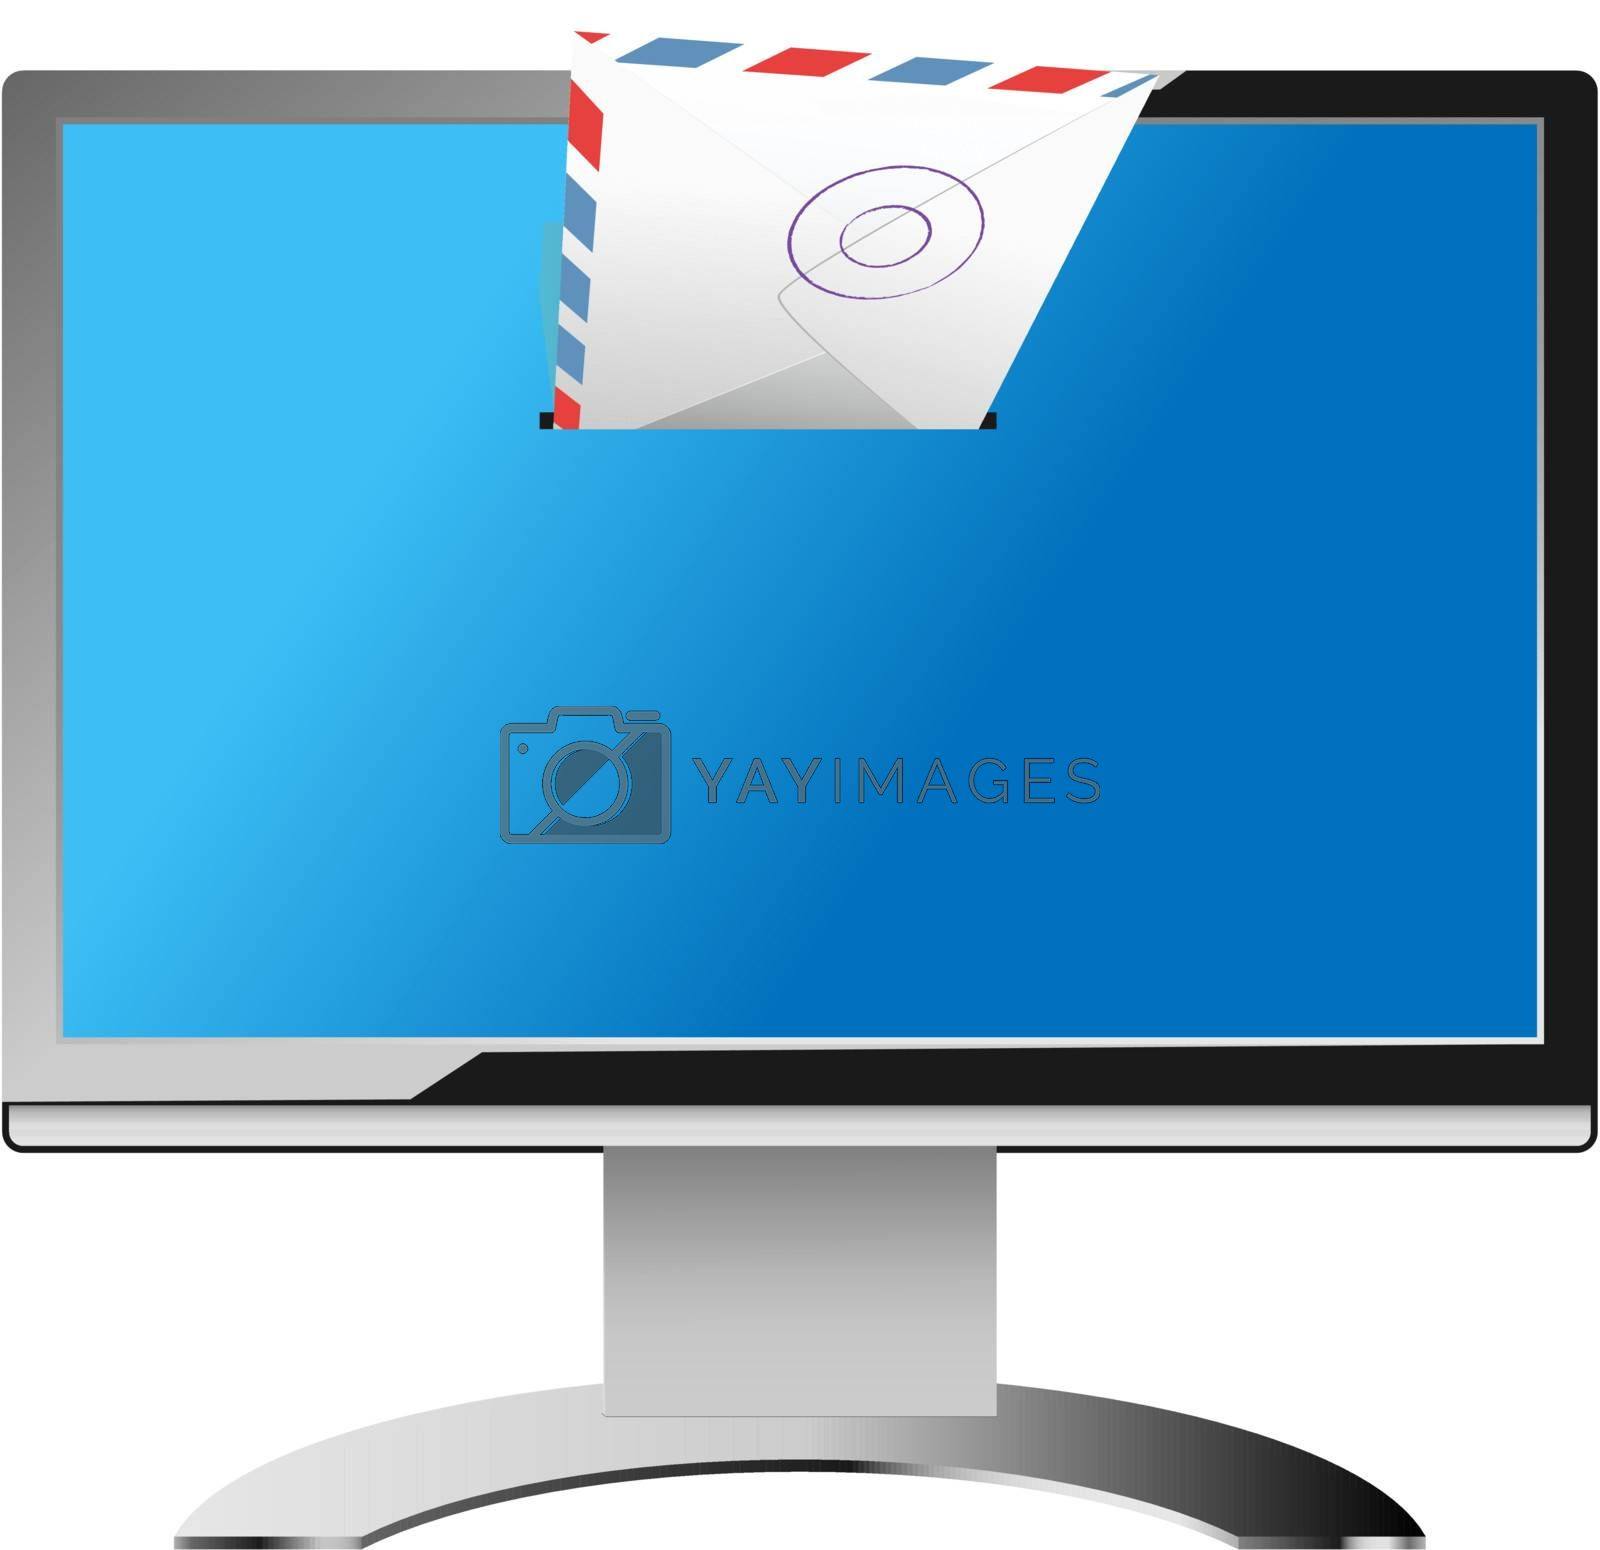 Royalty free image of email by kovacevic